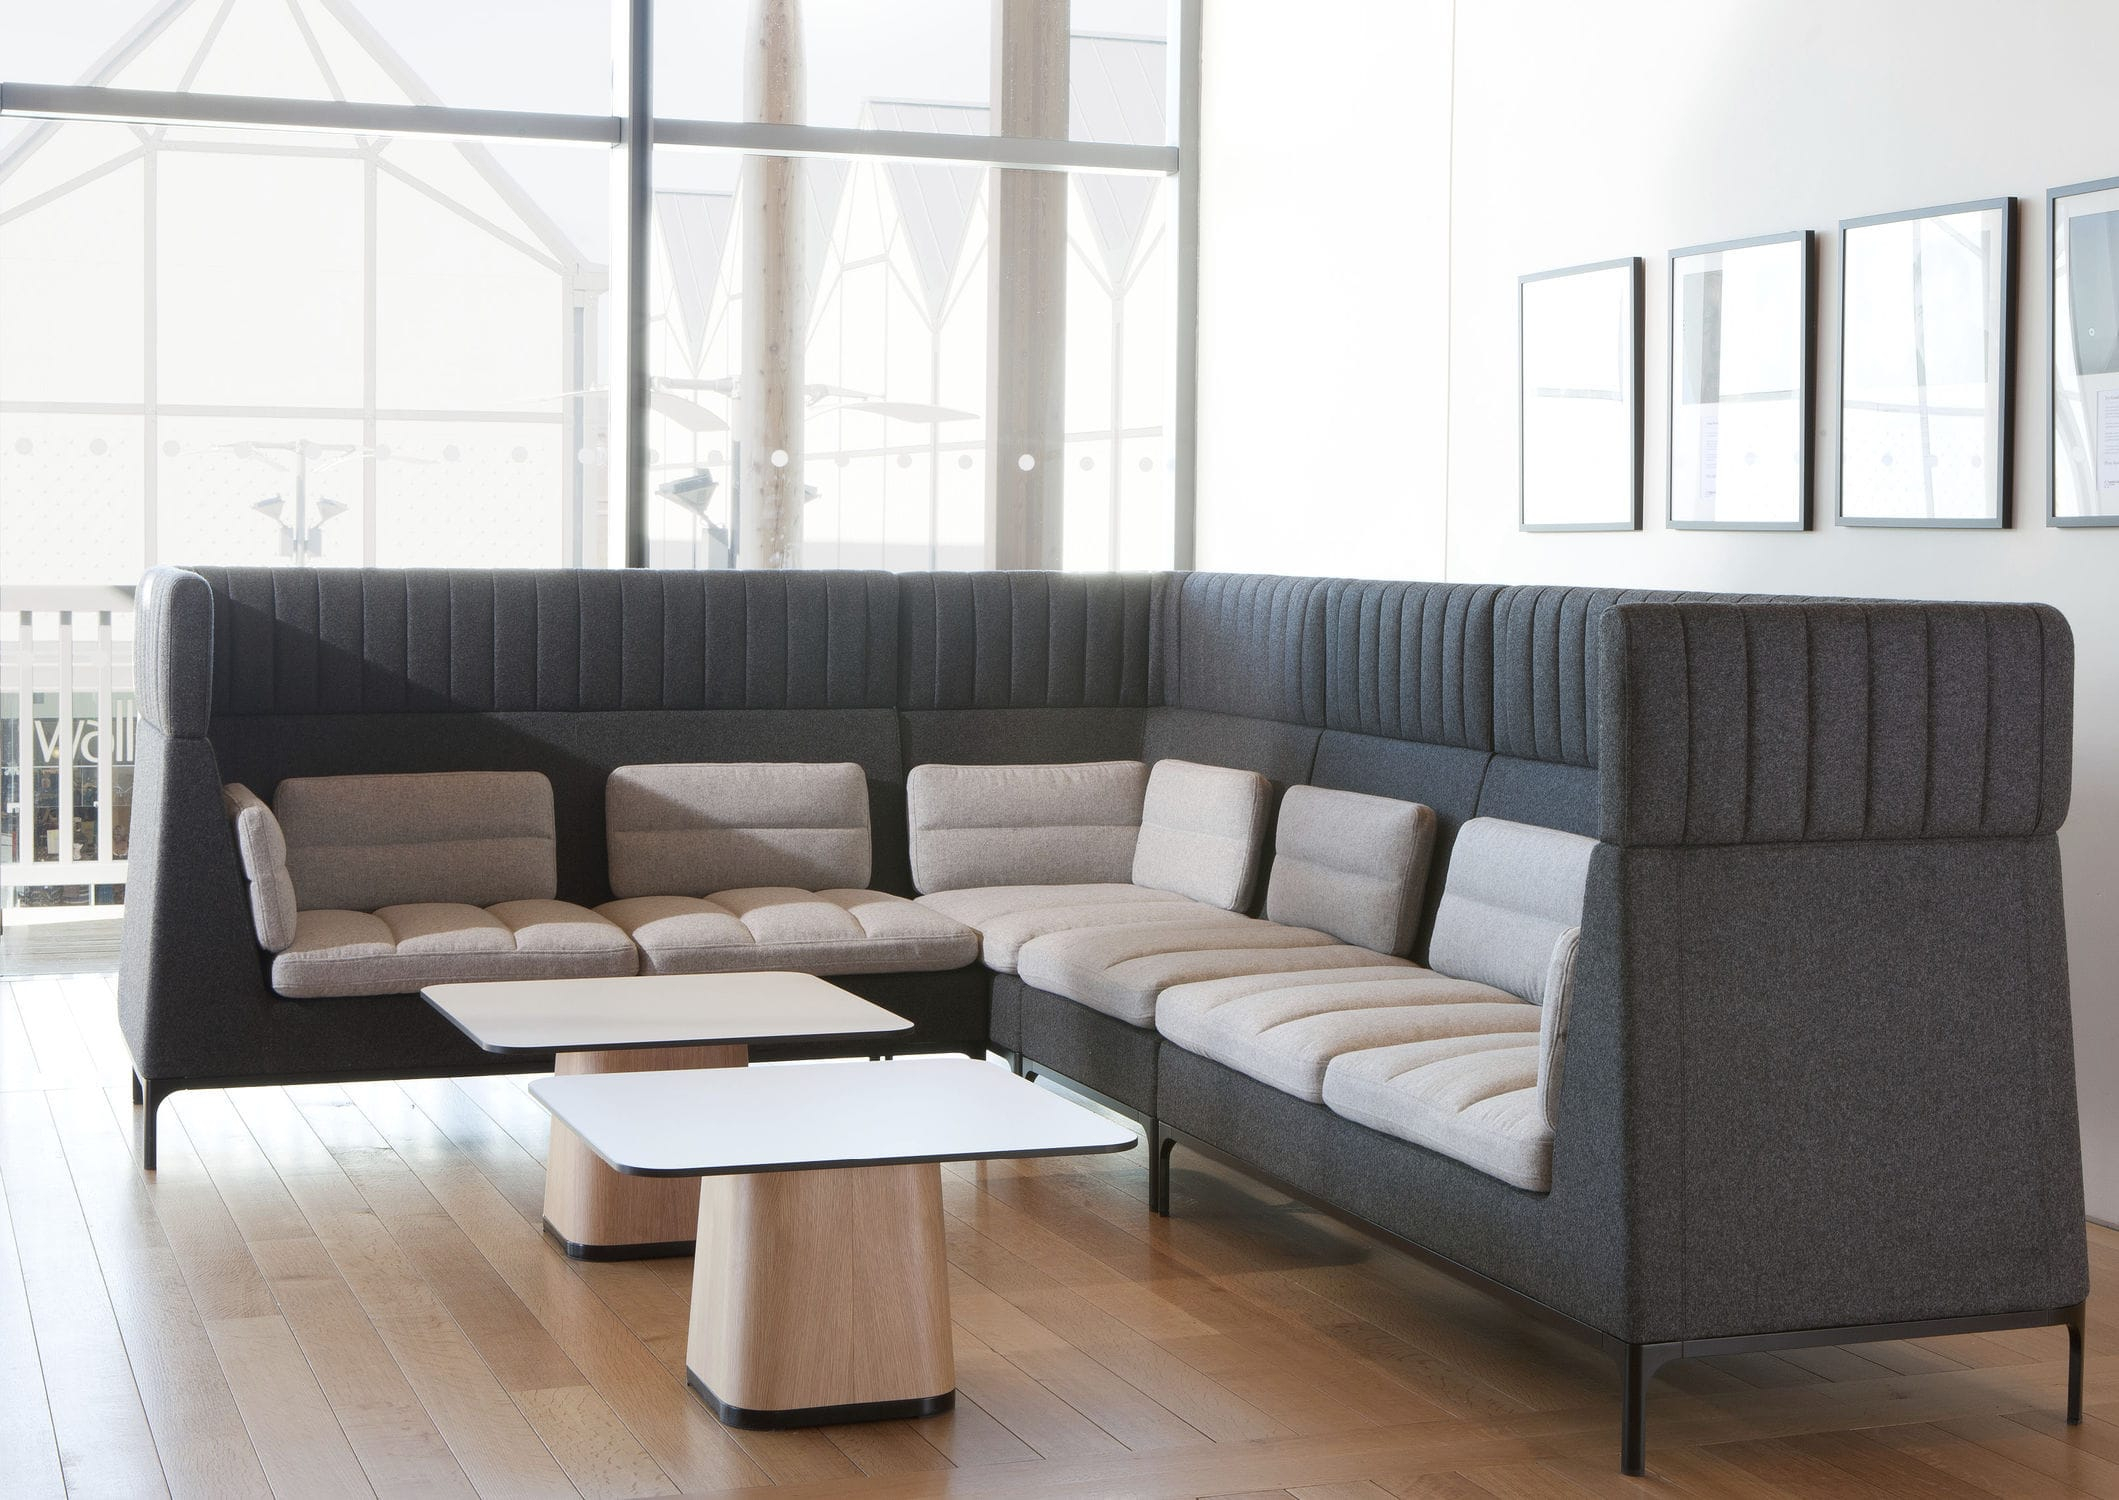 Modular Sofa / Contemporary / Aluminum / Fabric – Havenmark Pertaining To Haven Sofa Chairs (View 6 of 20)